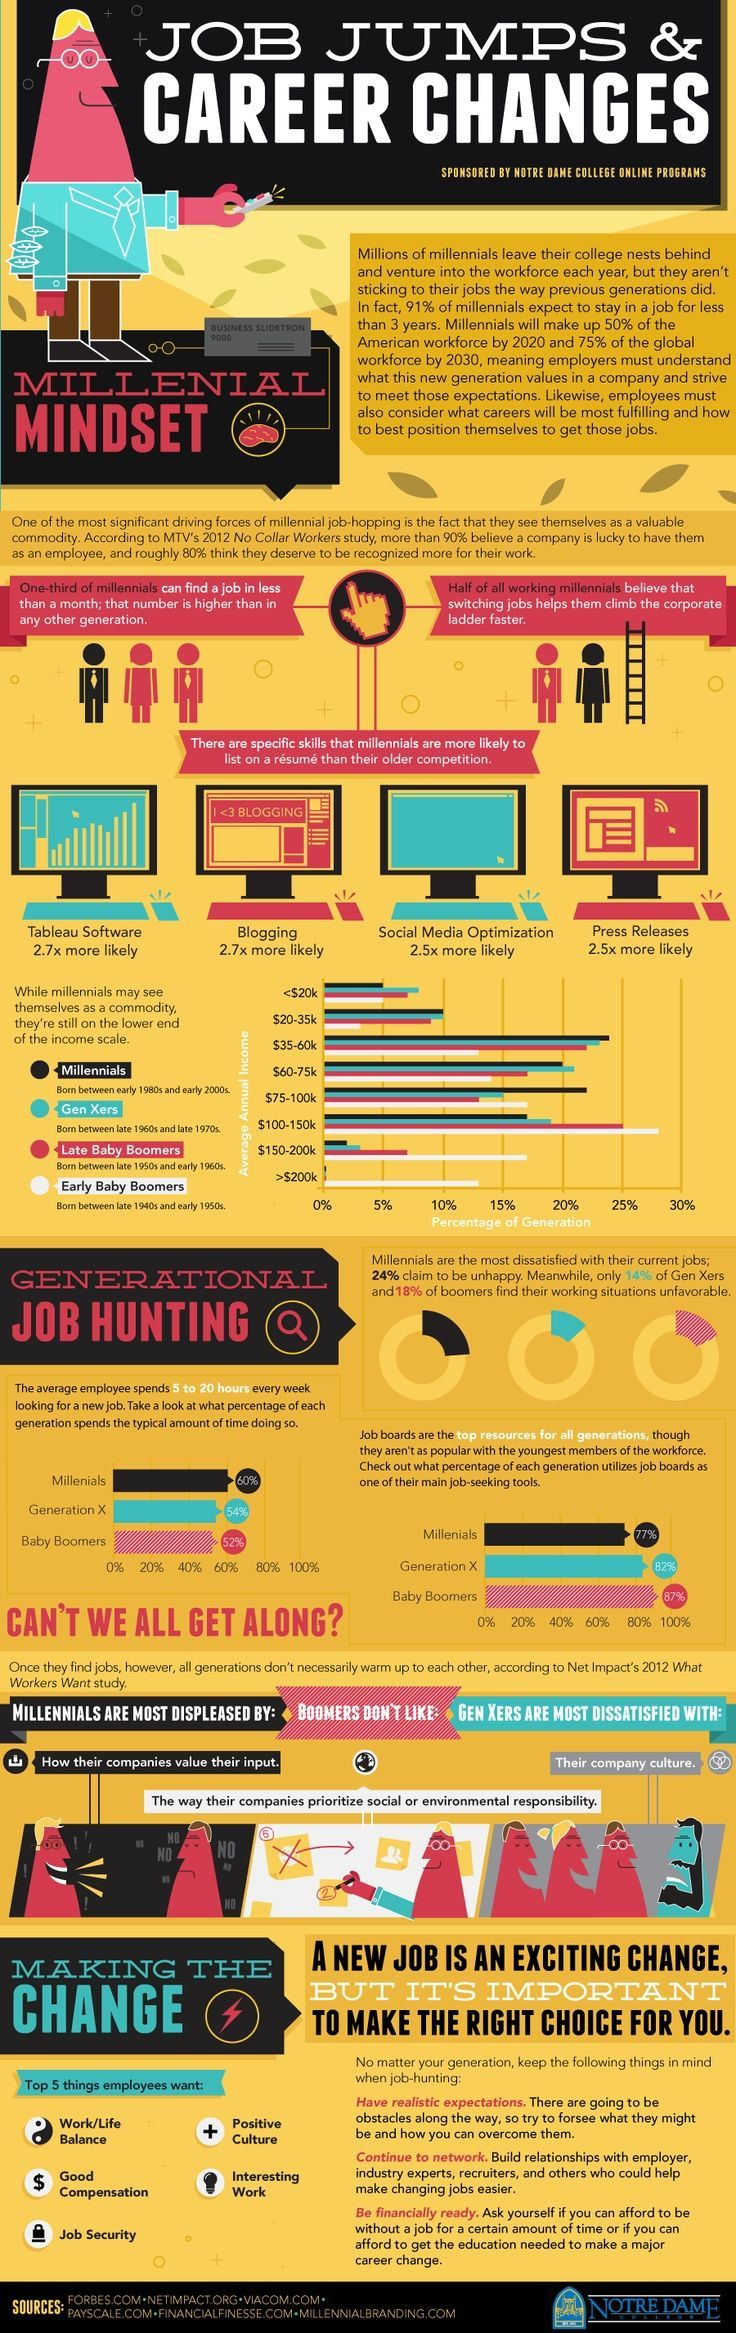 Awesome Job Jumps And Career Changes: The Millennial Mindset: Infographic